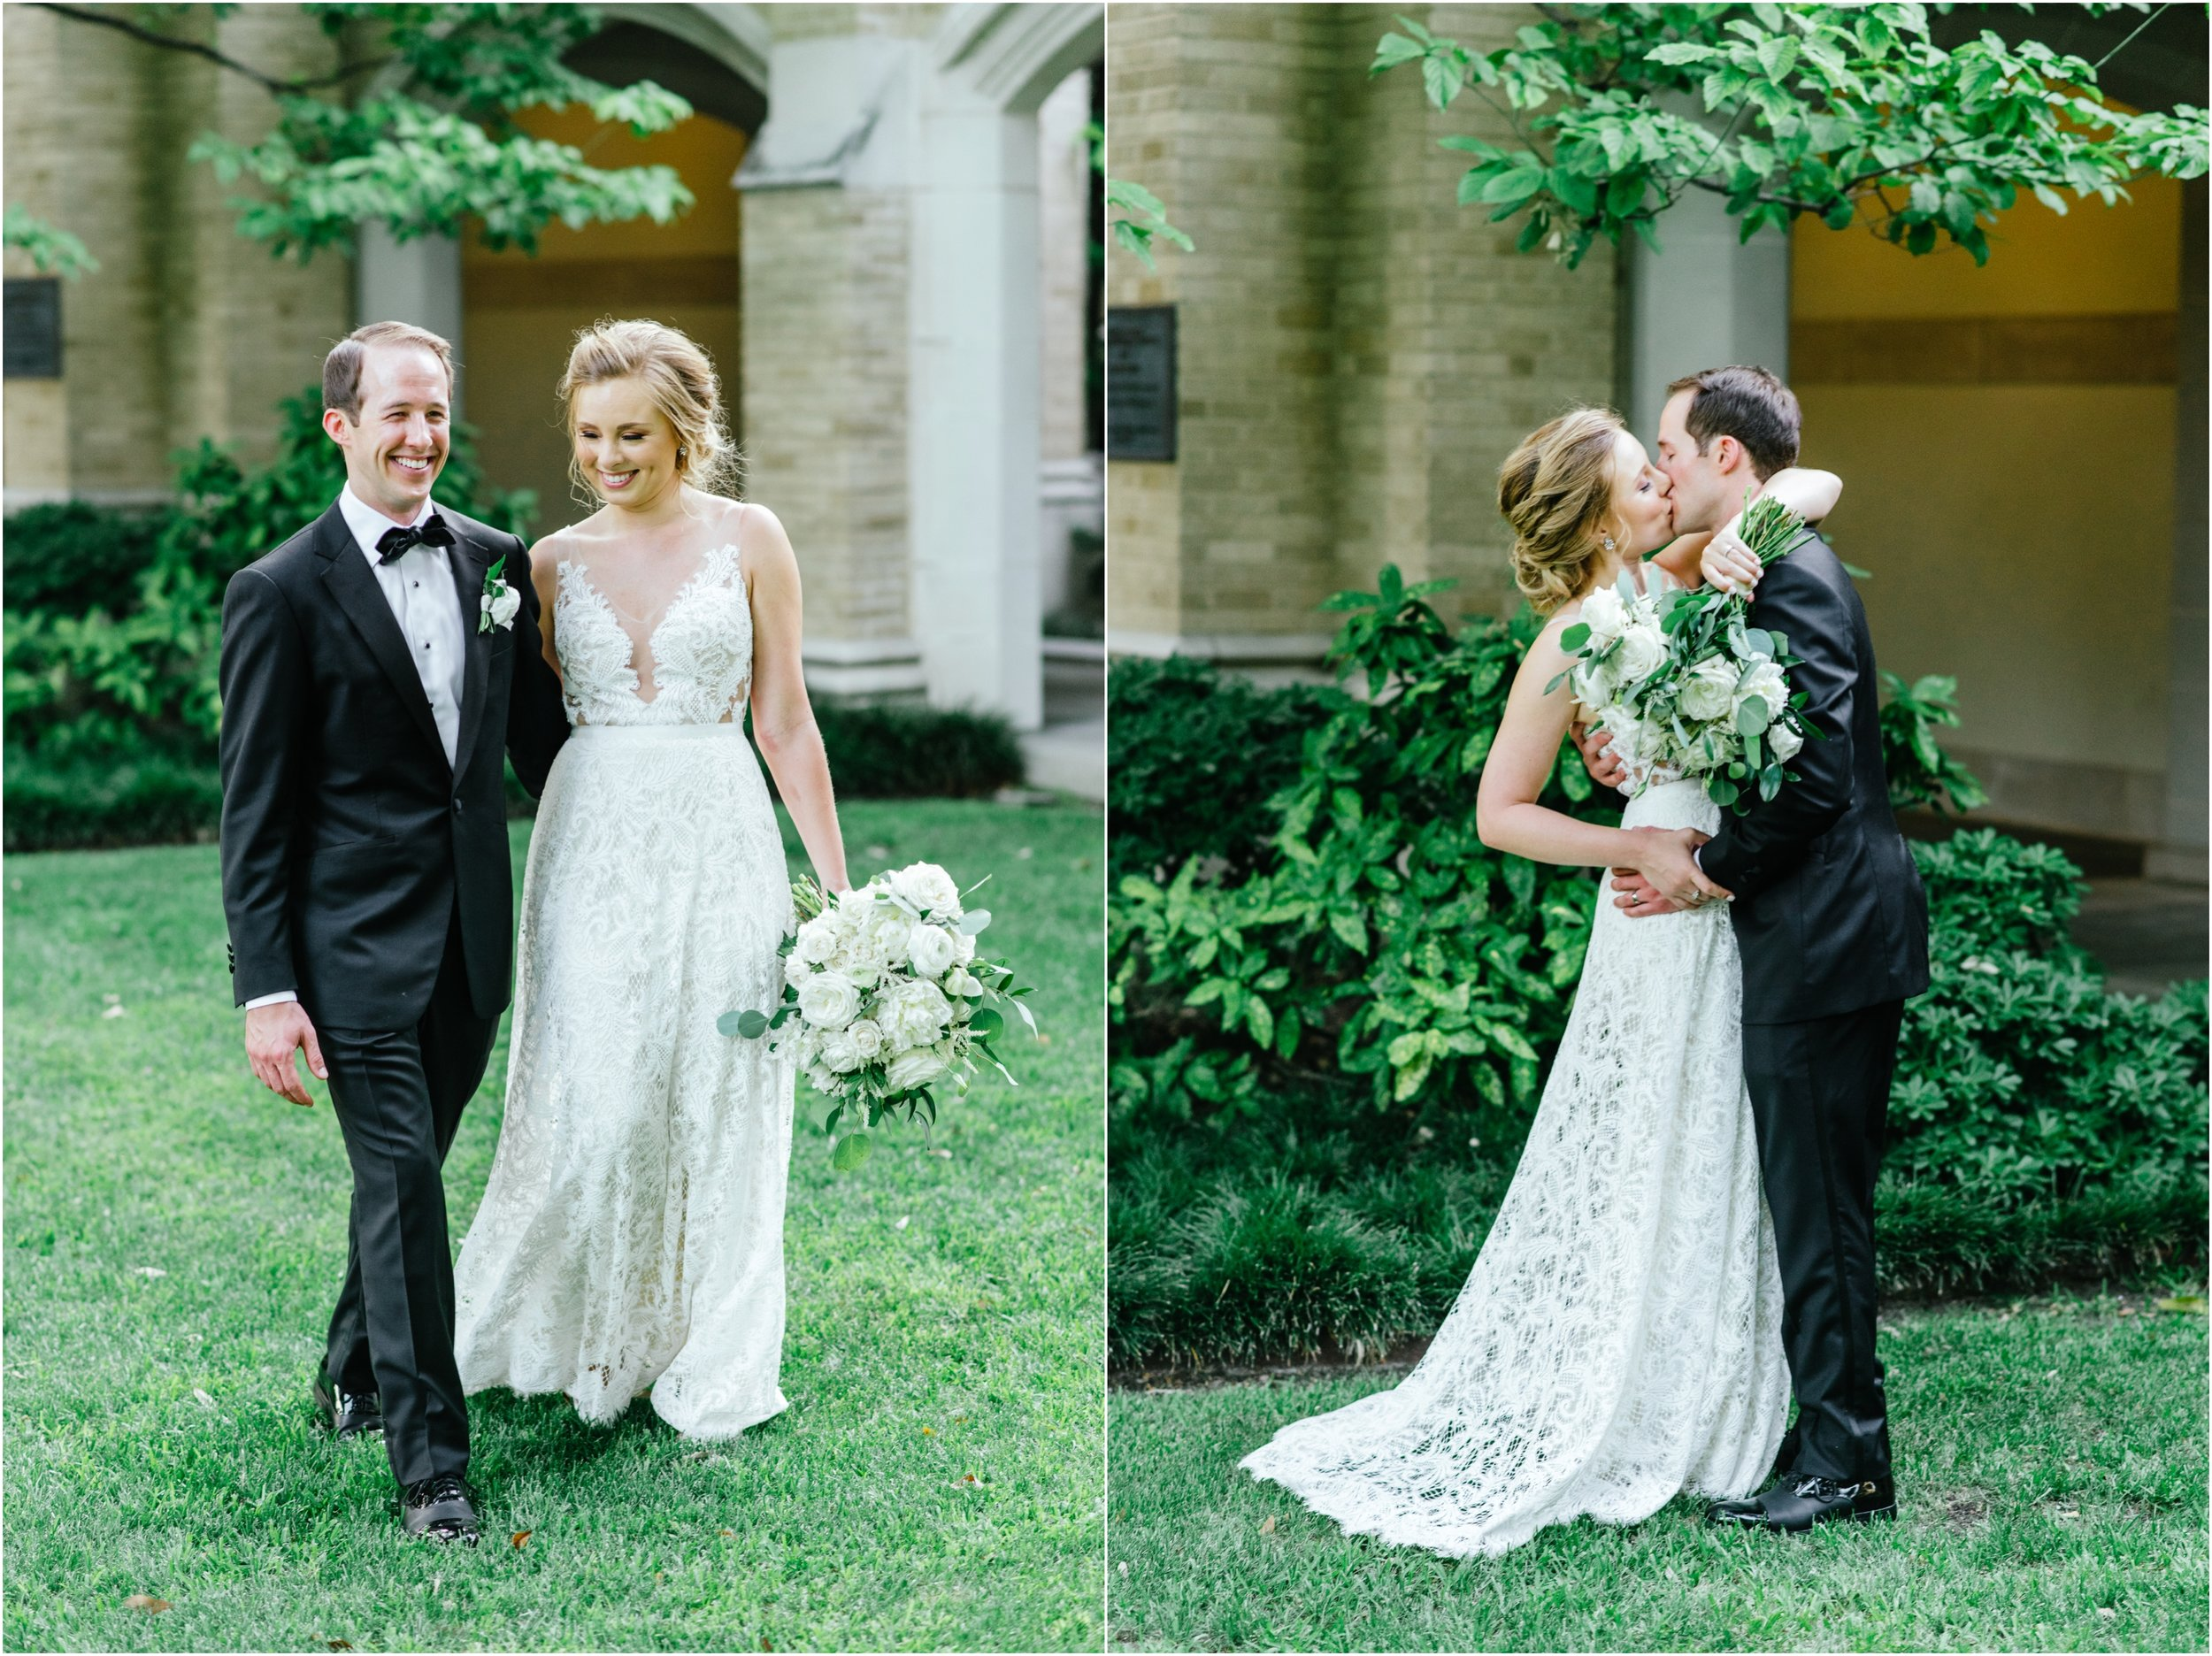 dallasweddingphotographer_fortworthweddingphotographer_texasweddingphotographer_mattandjulieweddings_Lauren+Andy_0071.jpg